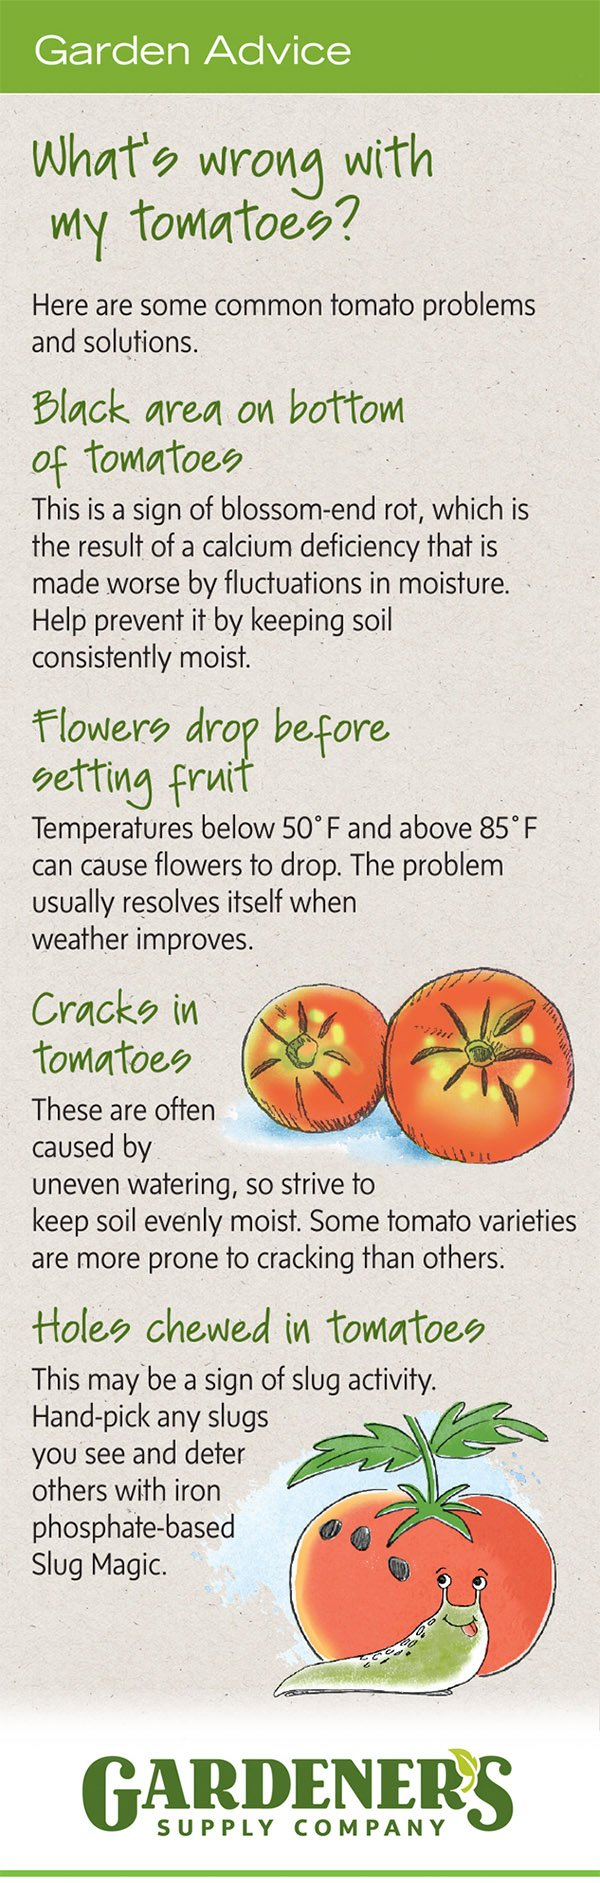 Troubleshooting tips for tomato problems